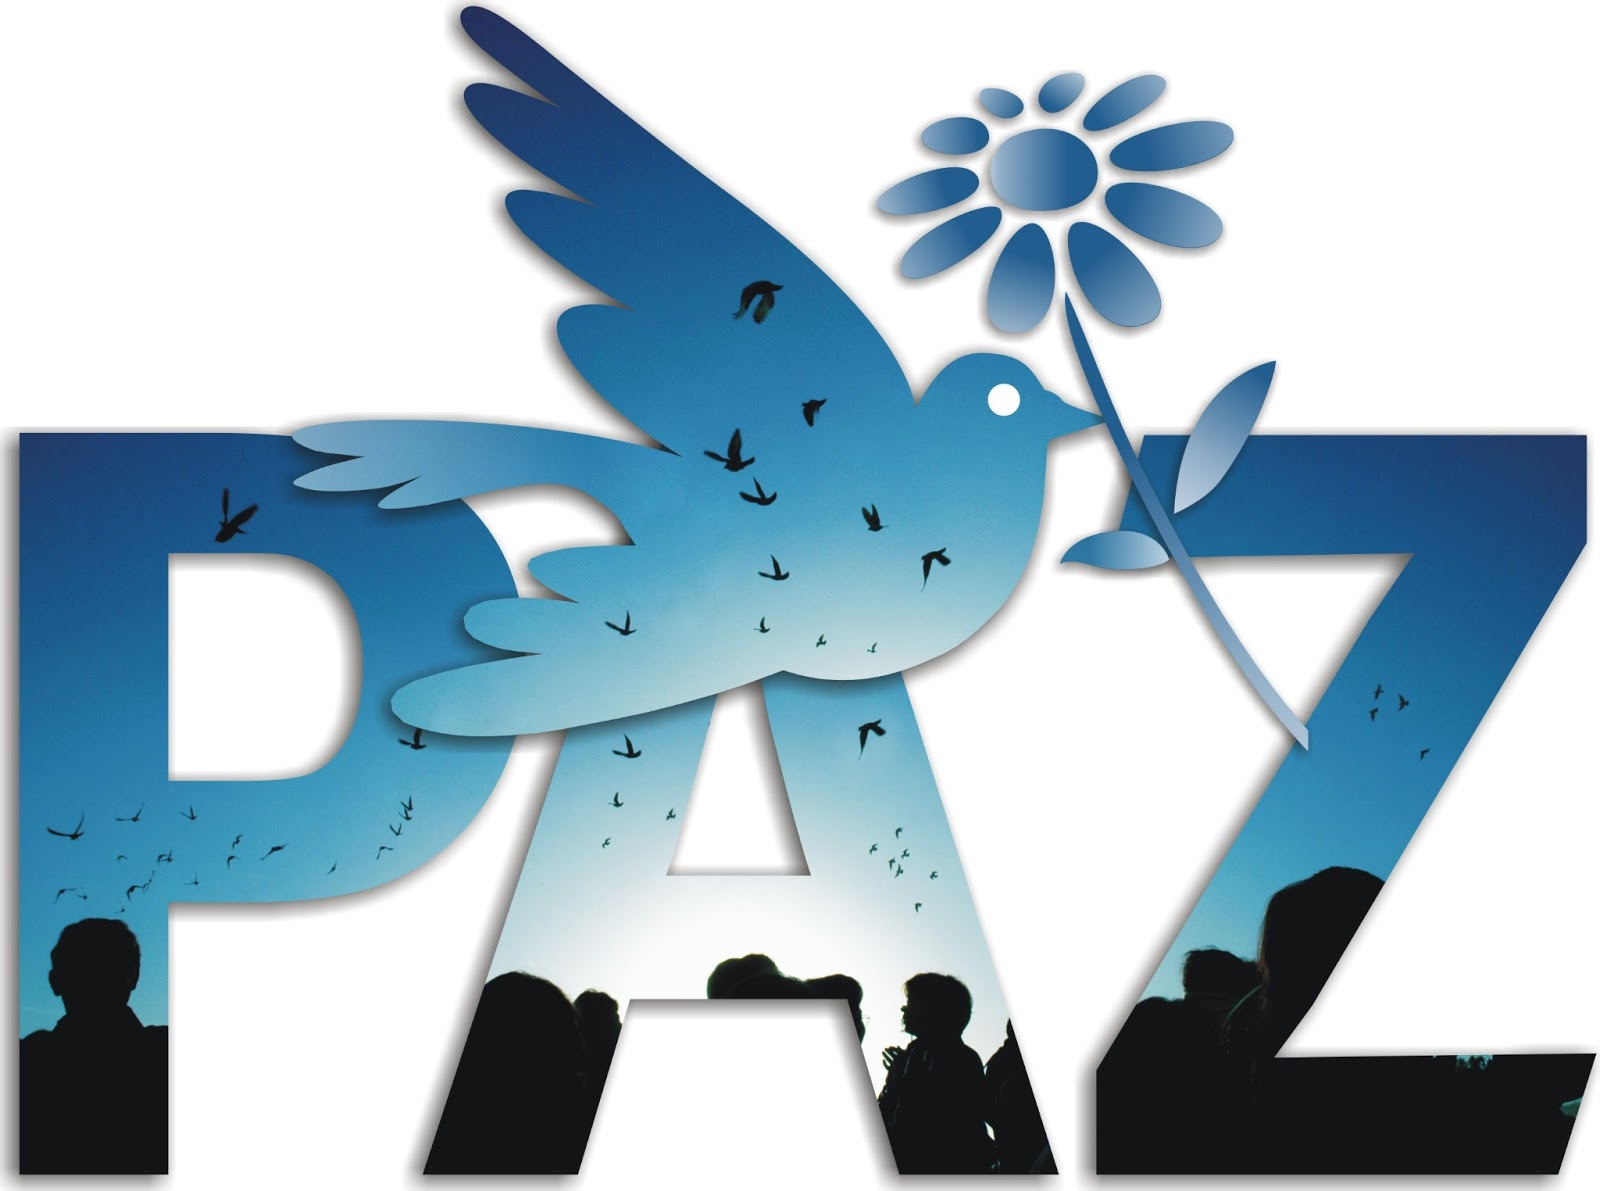 PAZ Logo 3D Wallpaper